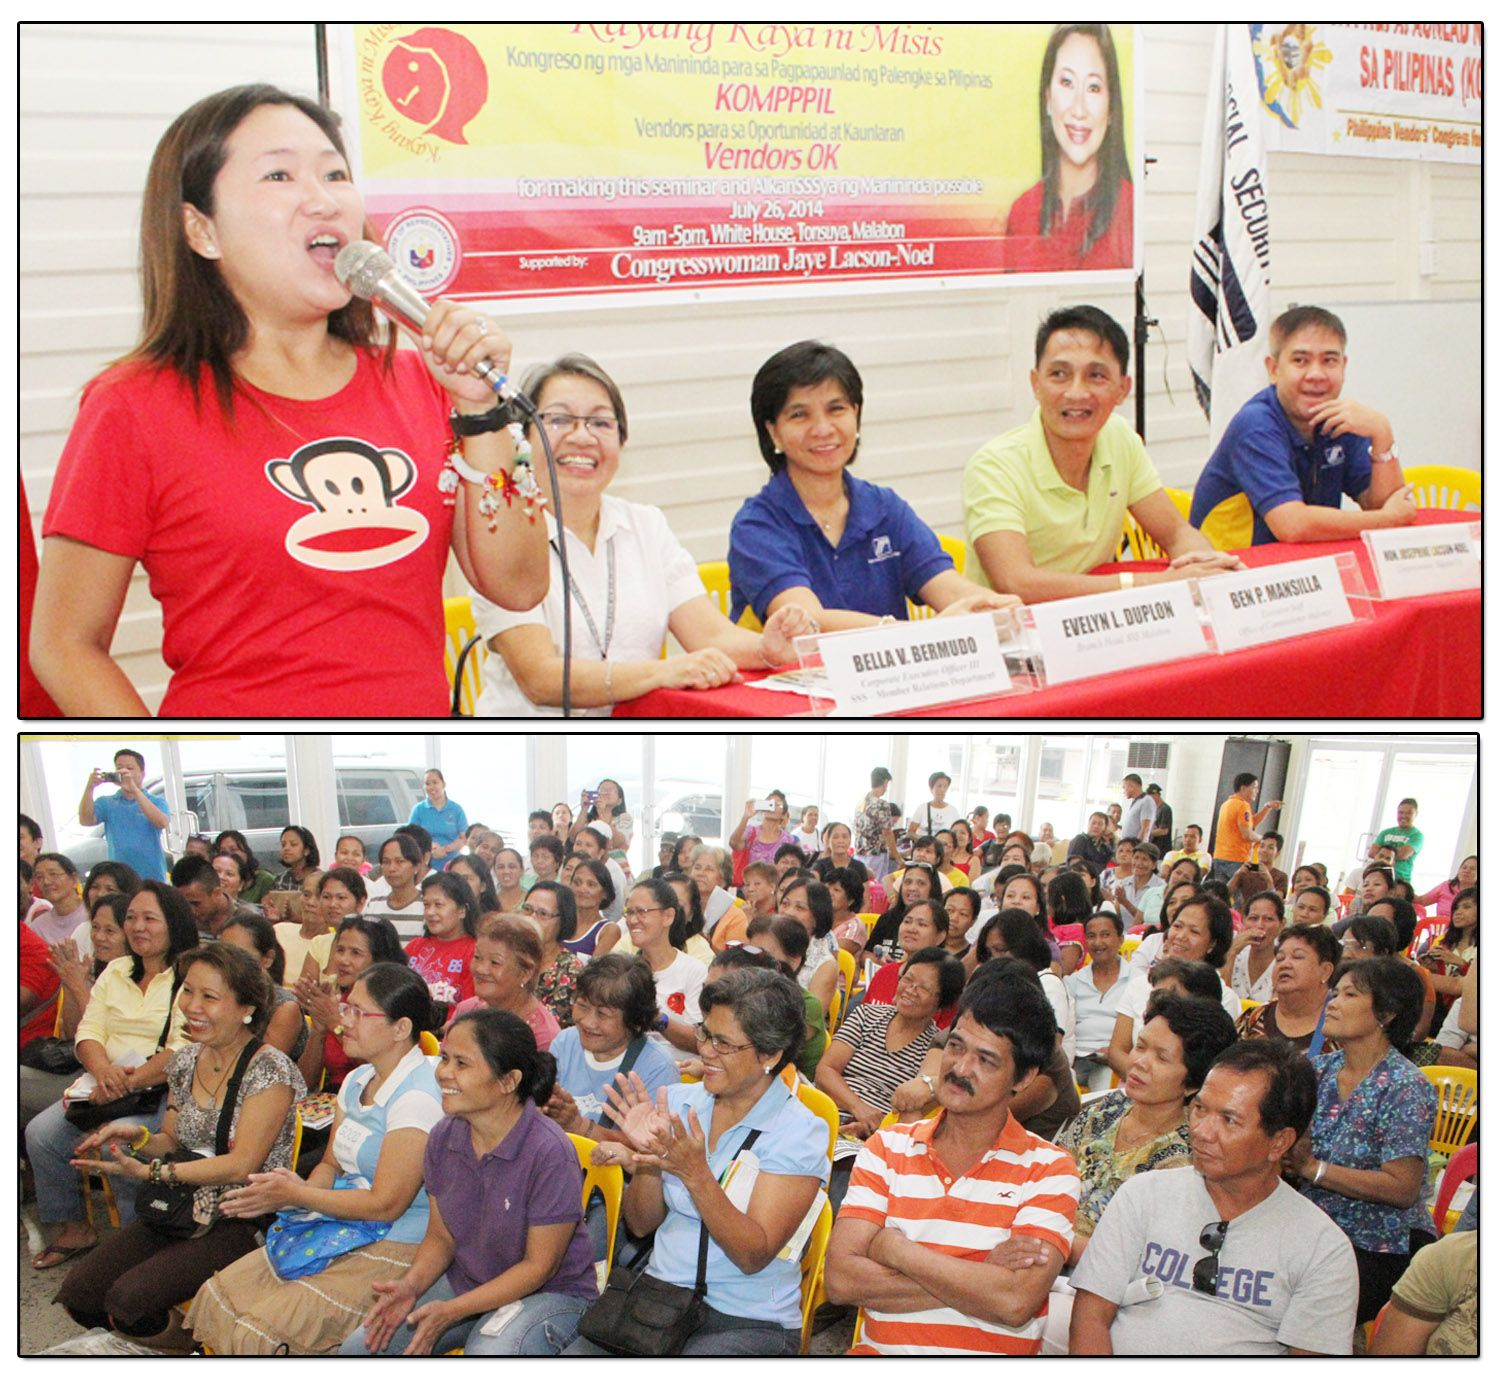 SSS conducts Information Seminar in Malabon  More than 150 members (bottom photo) of the Social Security System (SSS) attended the Information Seminar conducted at White House in Malabon City last July 26, 2014.